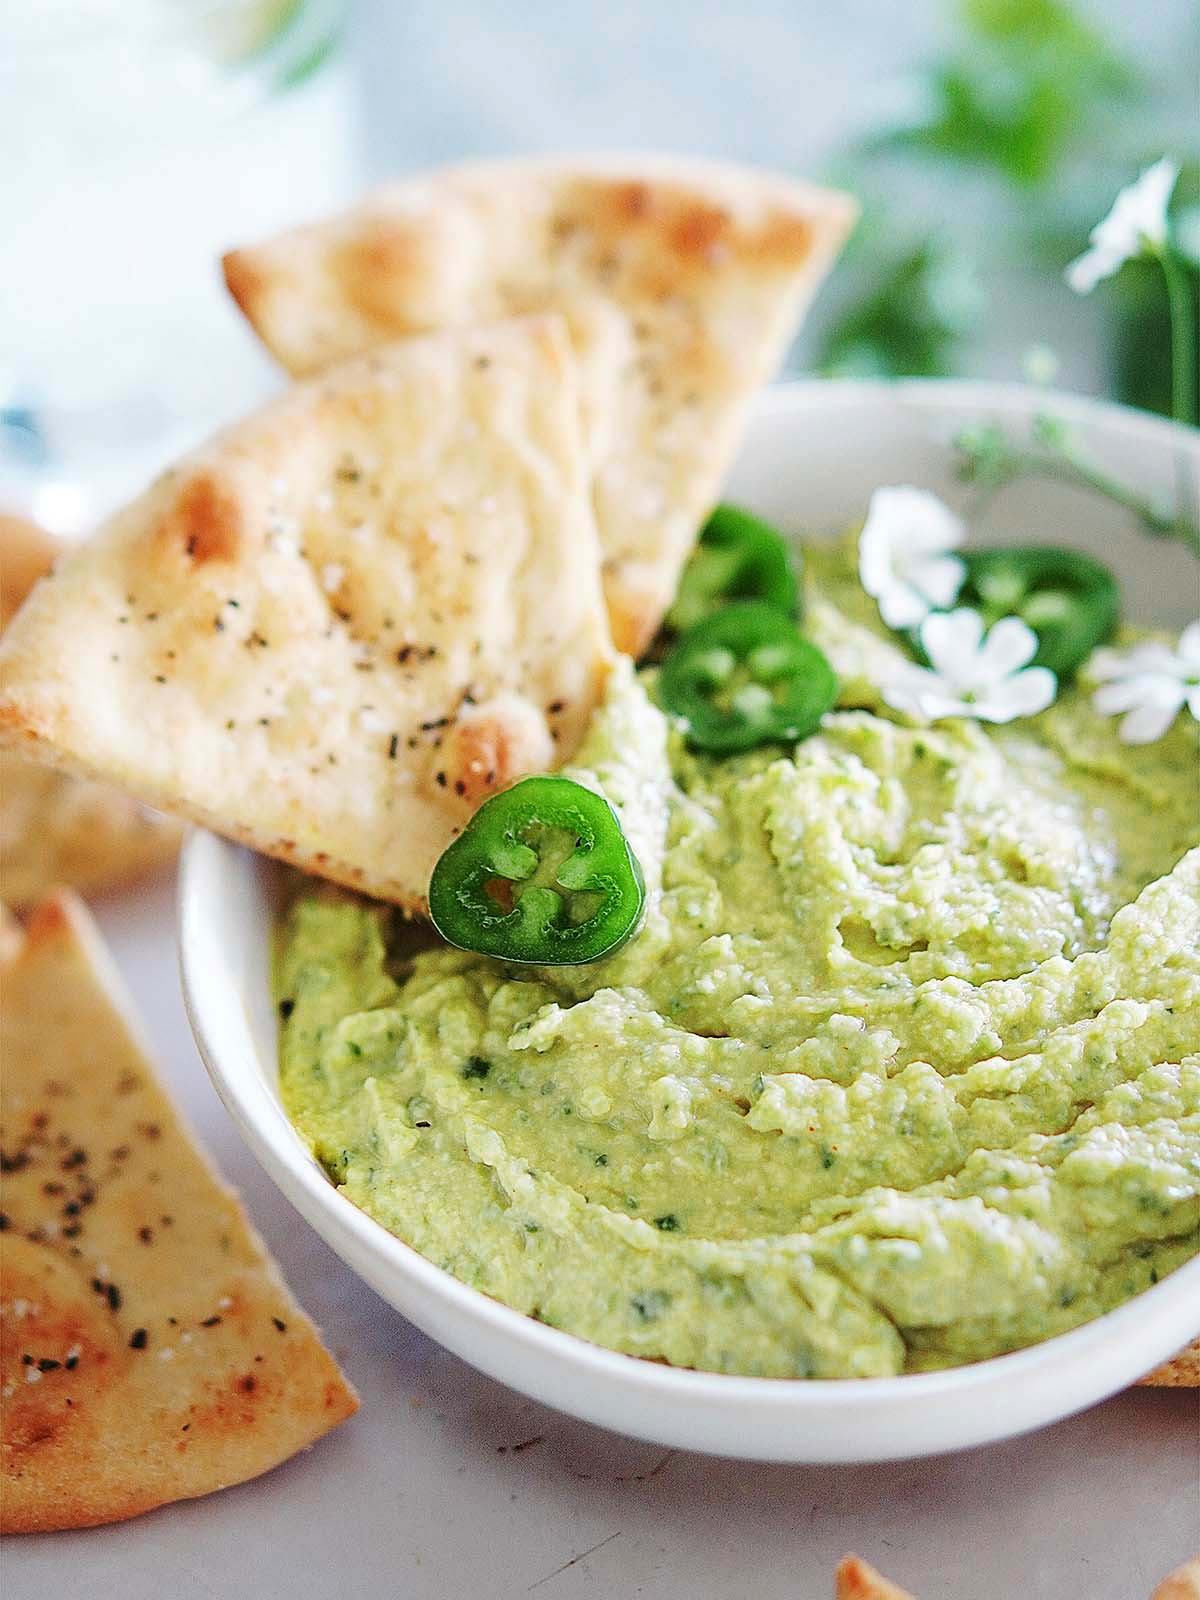 A bowl with Cilantro Jalapeño Hummus and chips on the side.